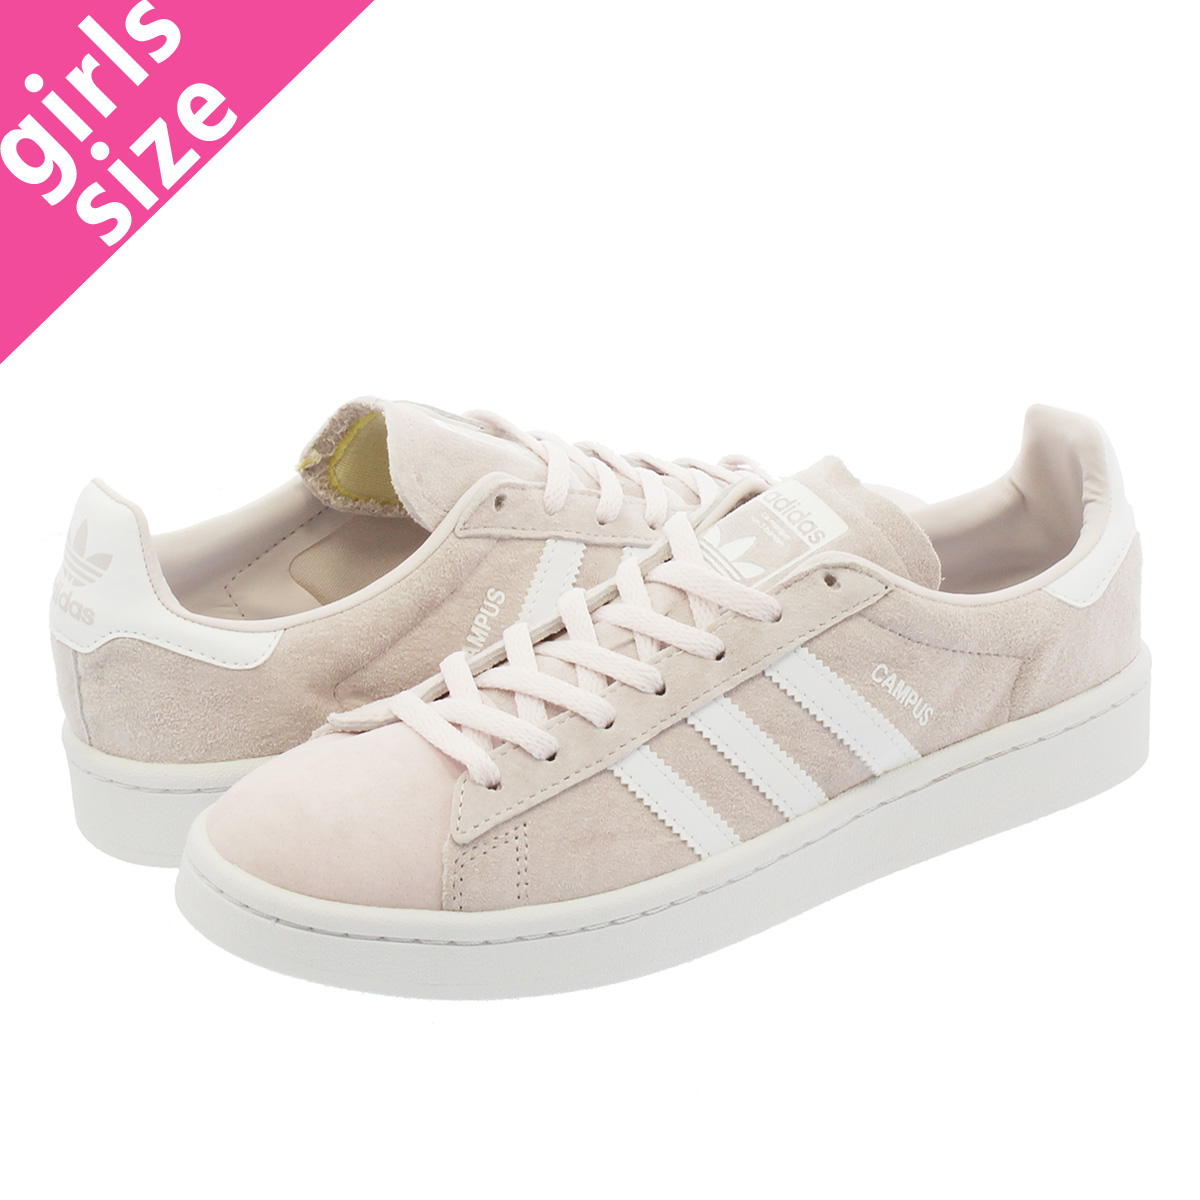 f9f33ff83a3f SELECT SHOP LOWTEX  adidas CAMPUS W Adidas women campus ORCHID TINT RUNNING  WHITE CRYSTAL WHITE